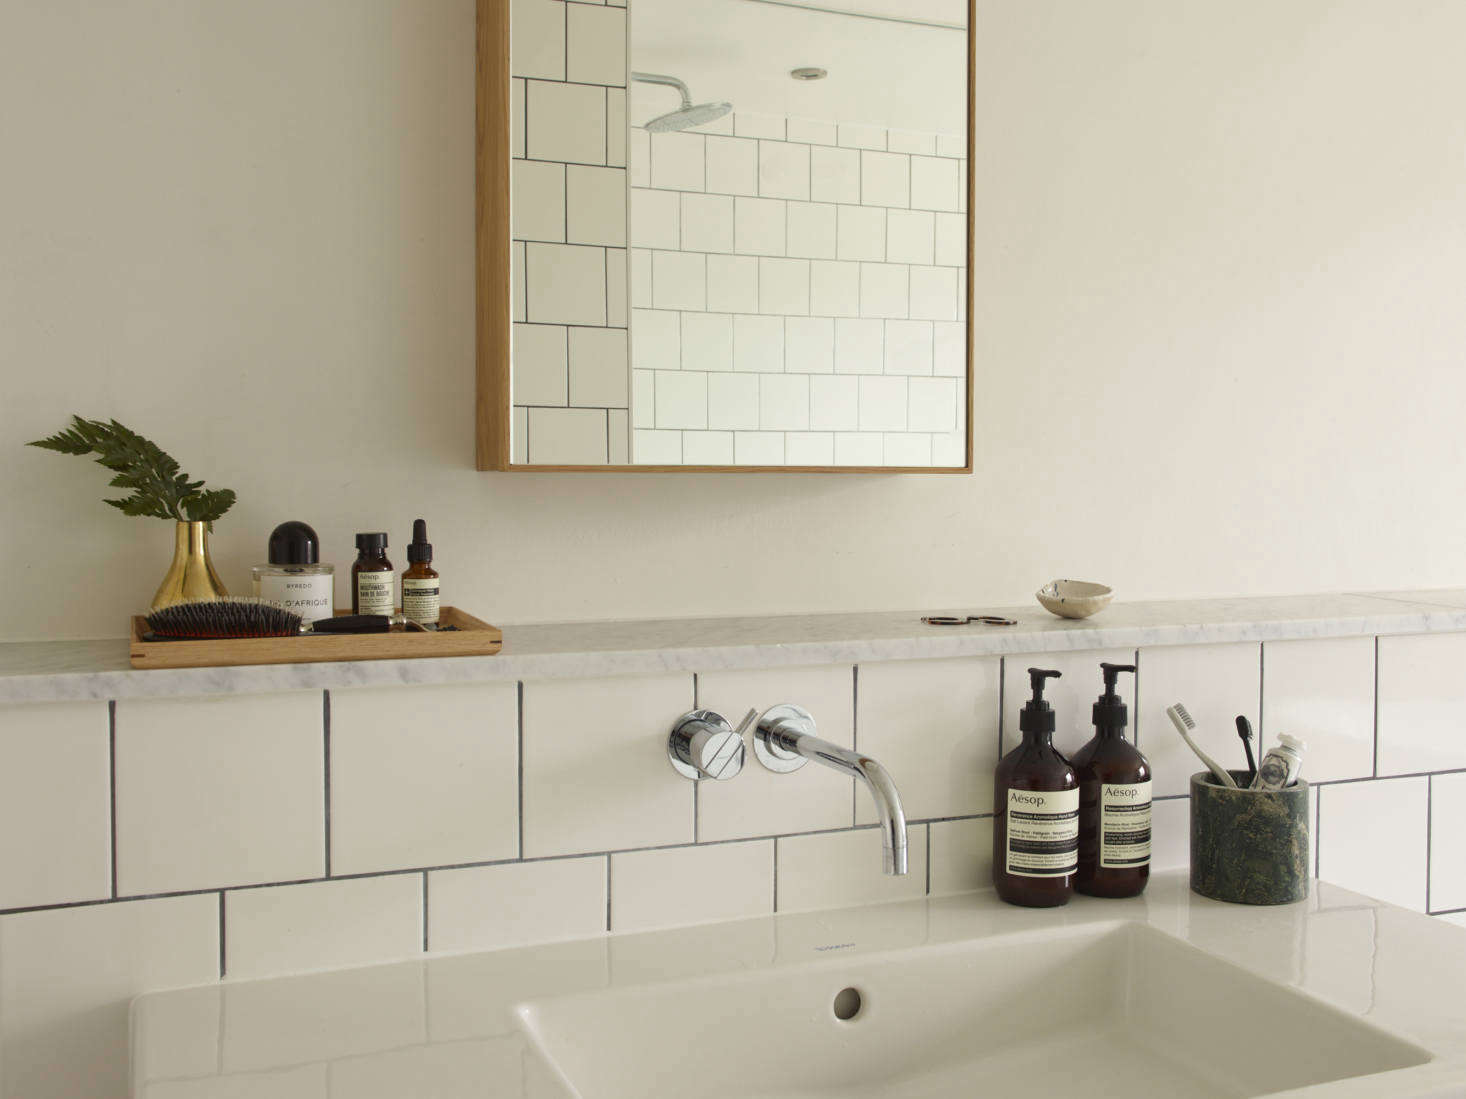 A marble shelf above the sink is a place for contained skincare products and brushes. Photograph by Richard Round-Turner fromA Star Is Born: A Rehabbed London Maisonette from a Newly Minted Designer, High/Low Secrets Included.